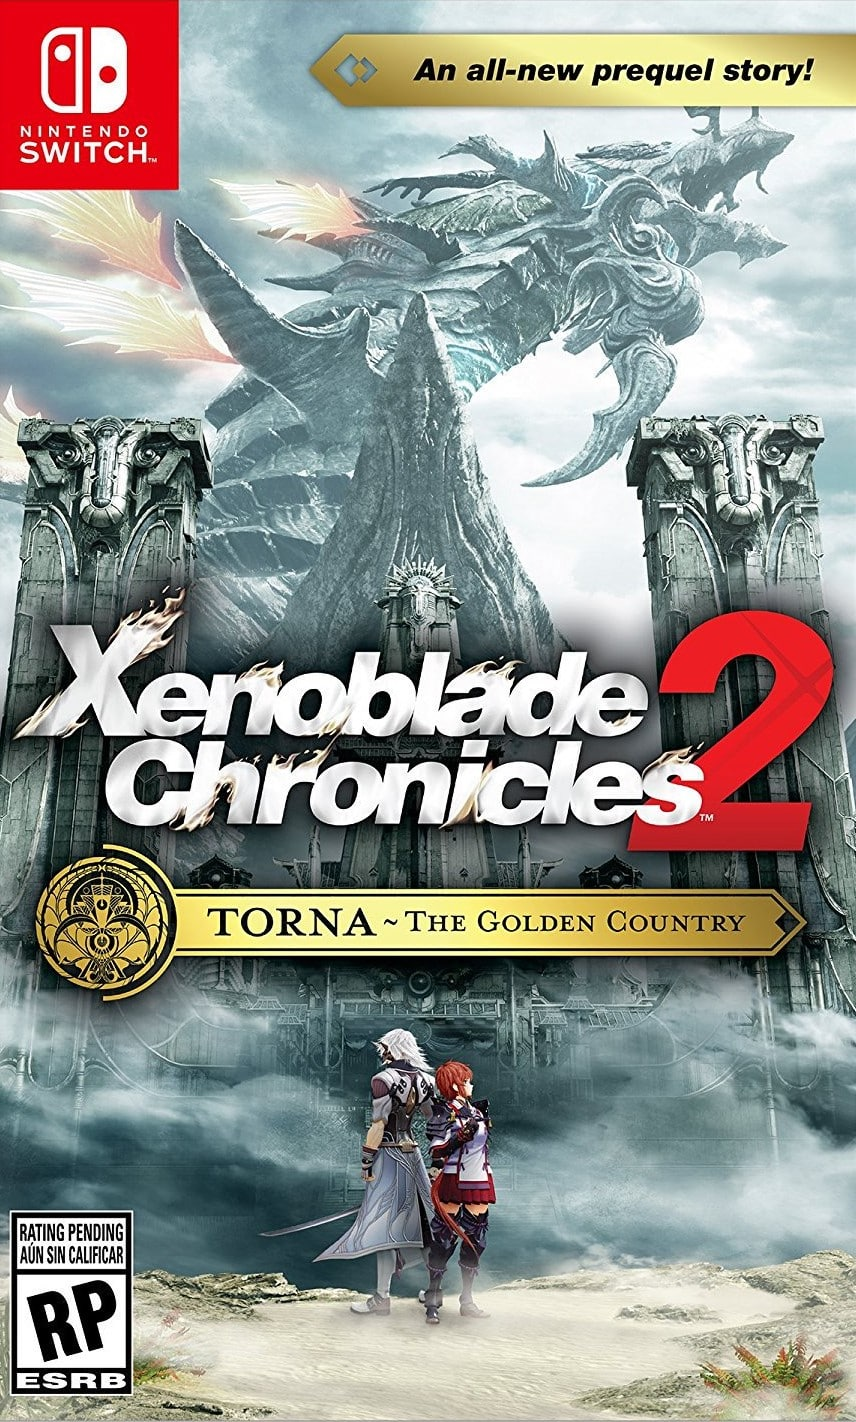 Acheter xenoblade chronicles 2 torna the golden country - Prix livraison but forum ...